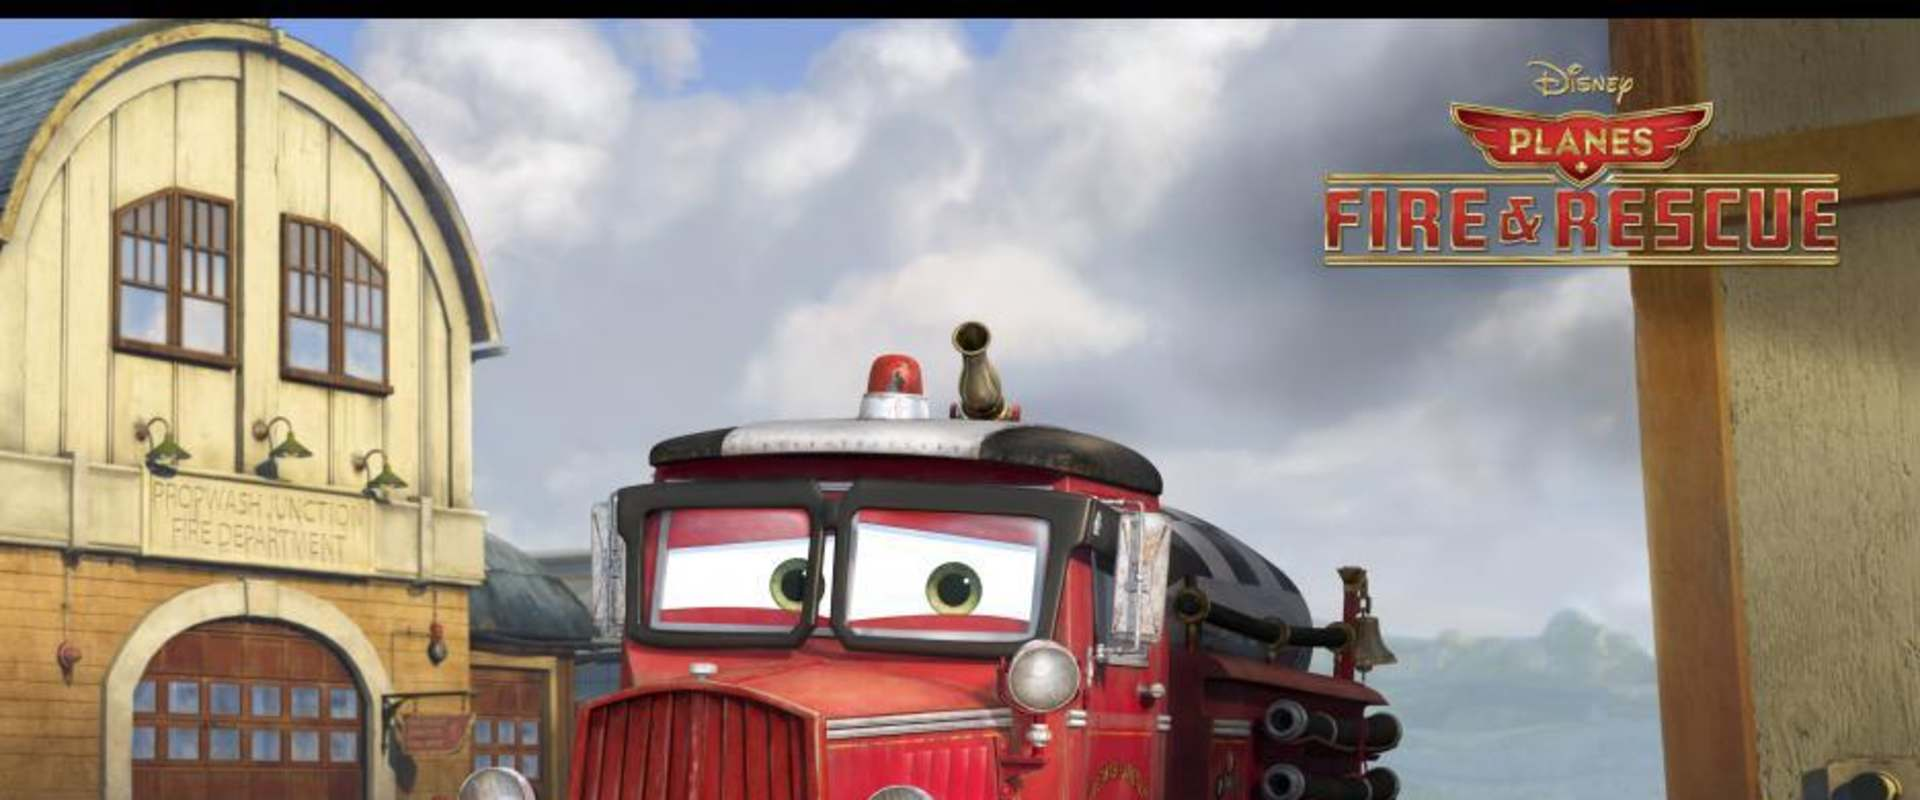 Planes: Fire & Rescue background 1